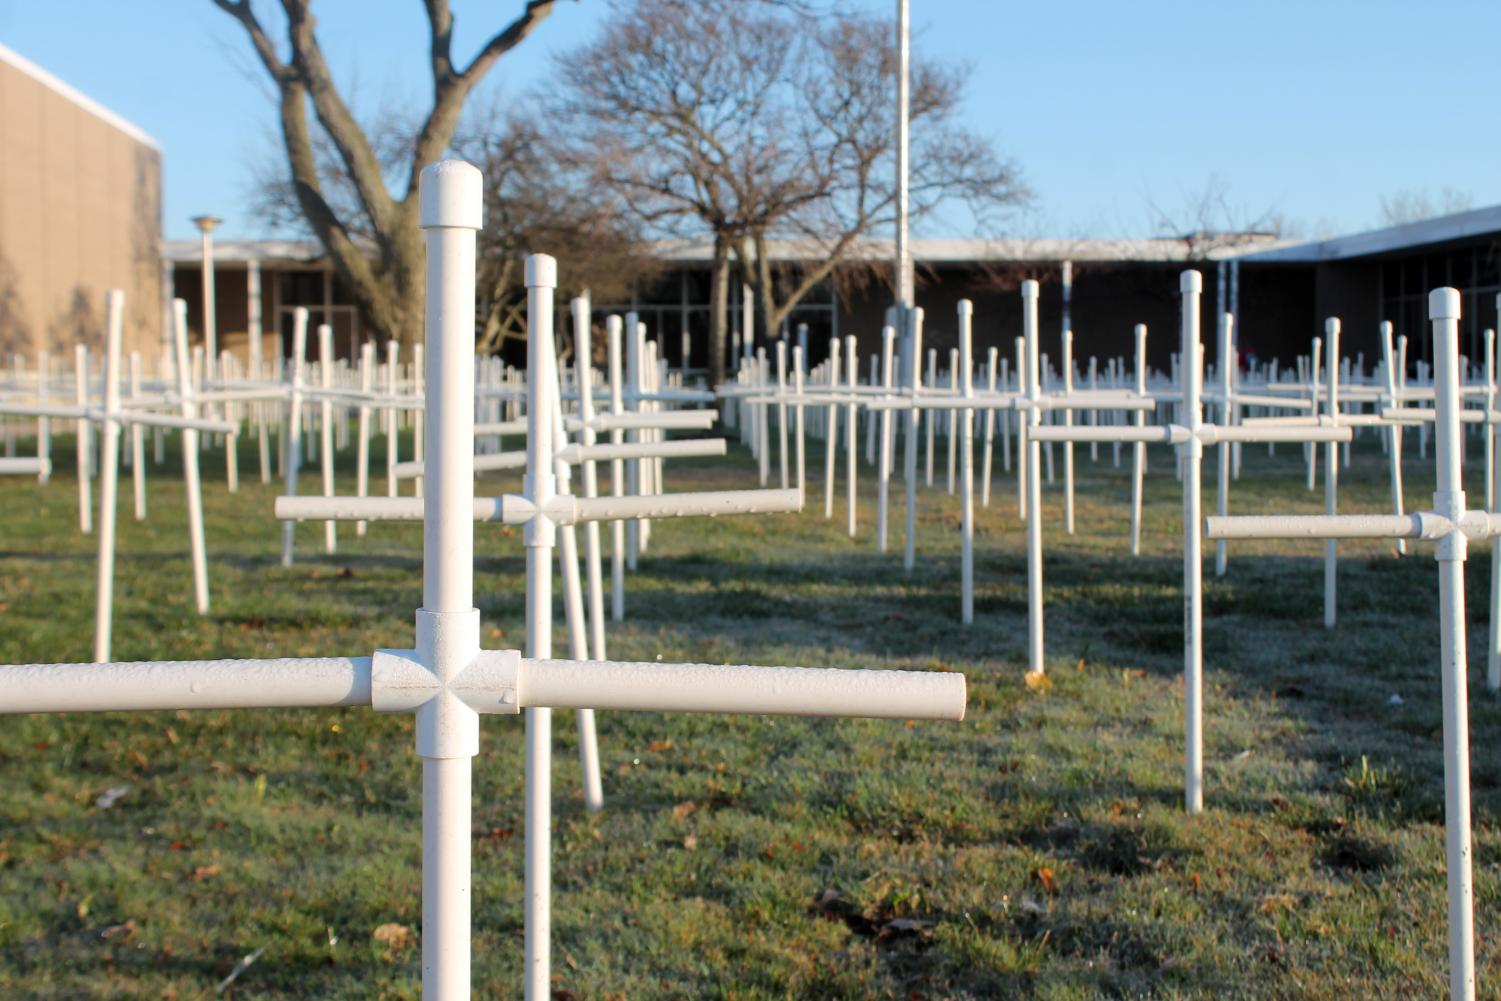 The 2017-2018 Pro Life leaders ended their year with a memorial to the lost children through abortion. Each cross stands for three of the 3,000 babies lost each day in the United States.